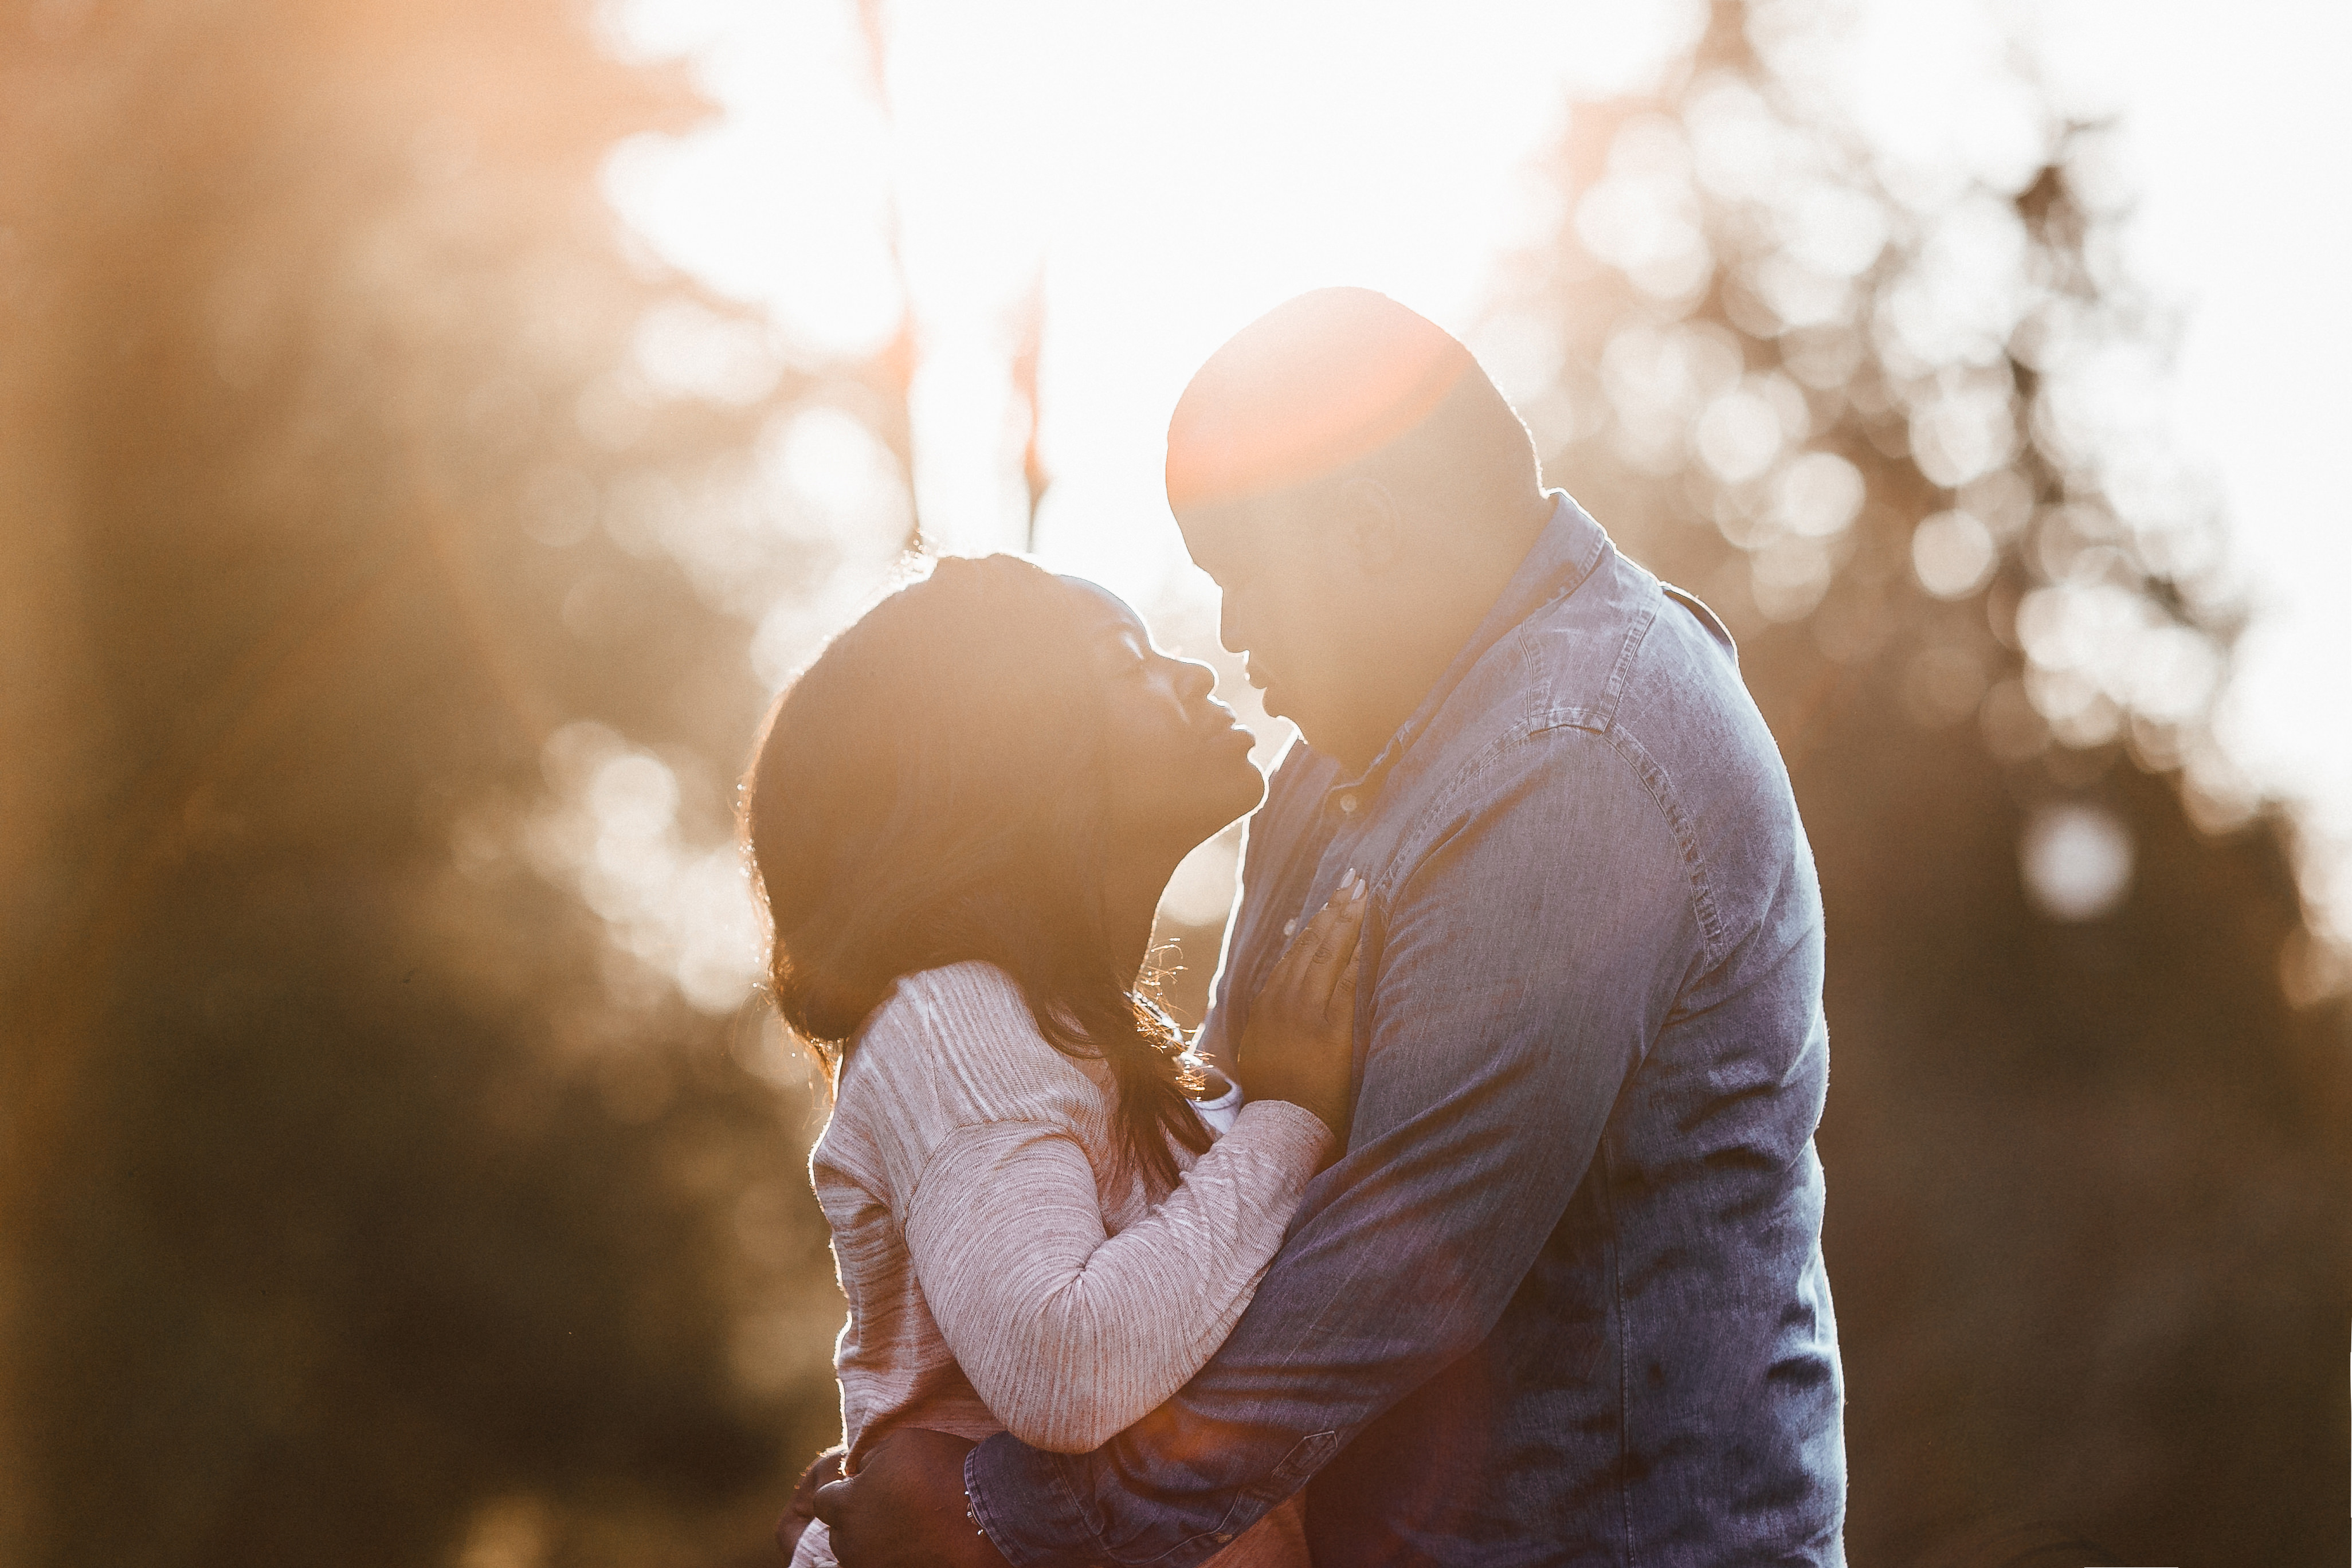 sunset and sunrise engagement shoot at victoria park in bath uk by somerset wedding photographer beatrici